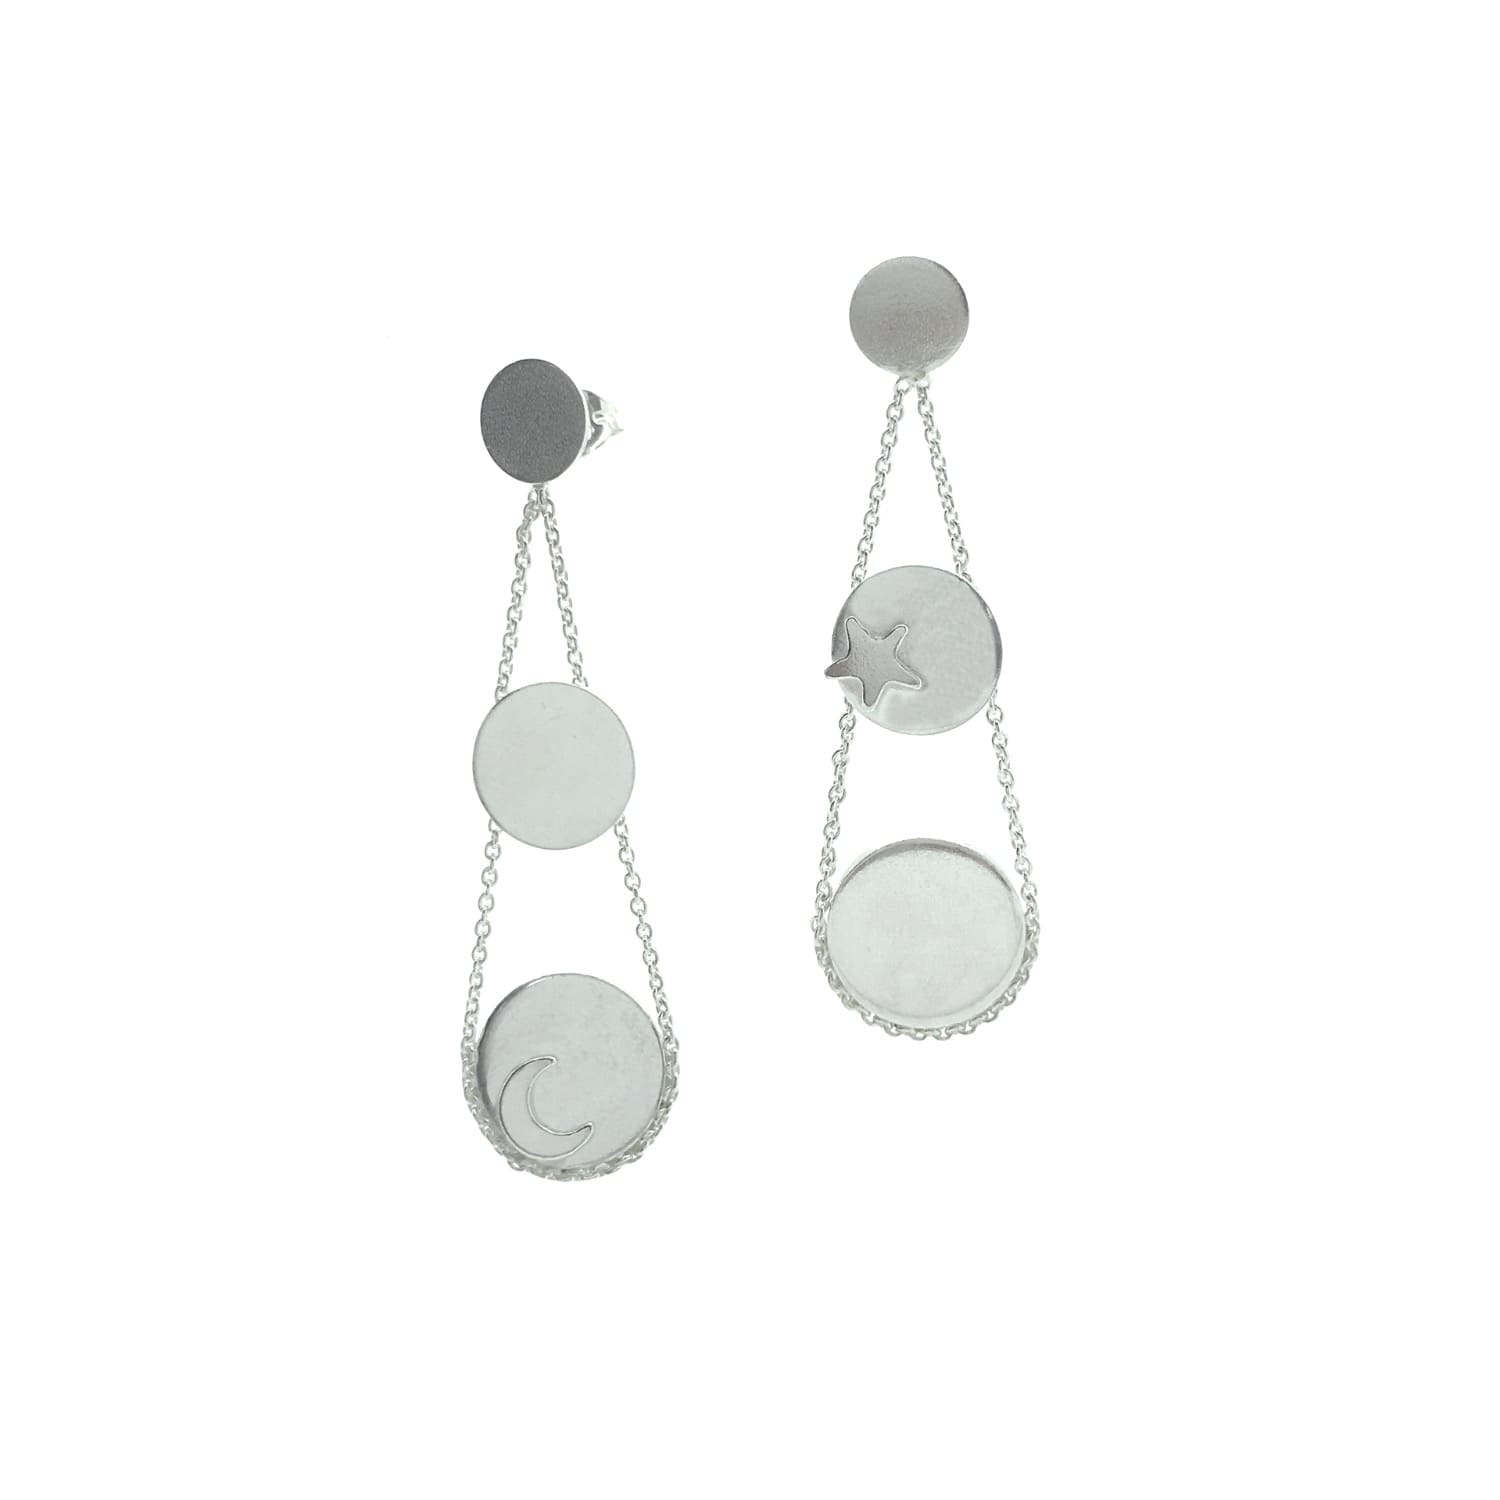 4806284abab Moon and Star Disc Drop Stud Earrings Sterling Silver by Lucy Ashton  Jewellery